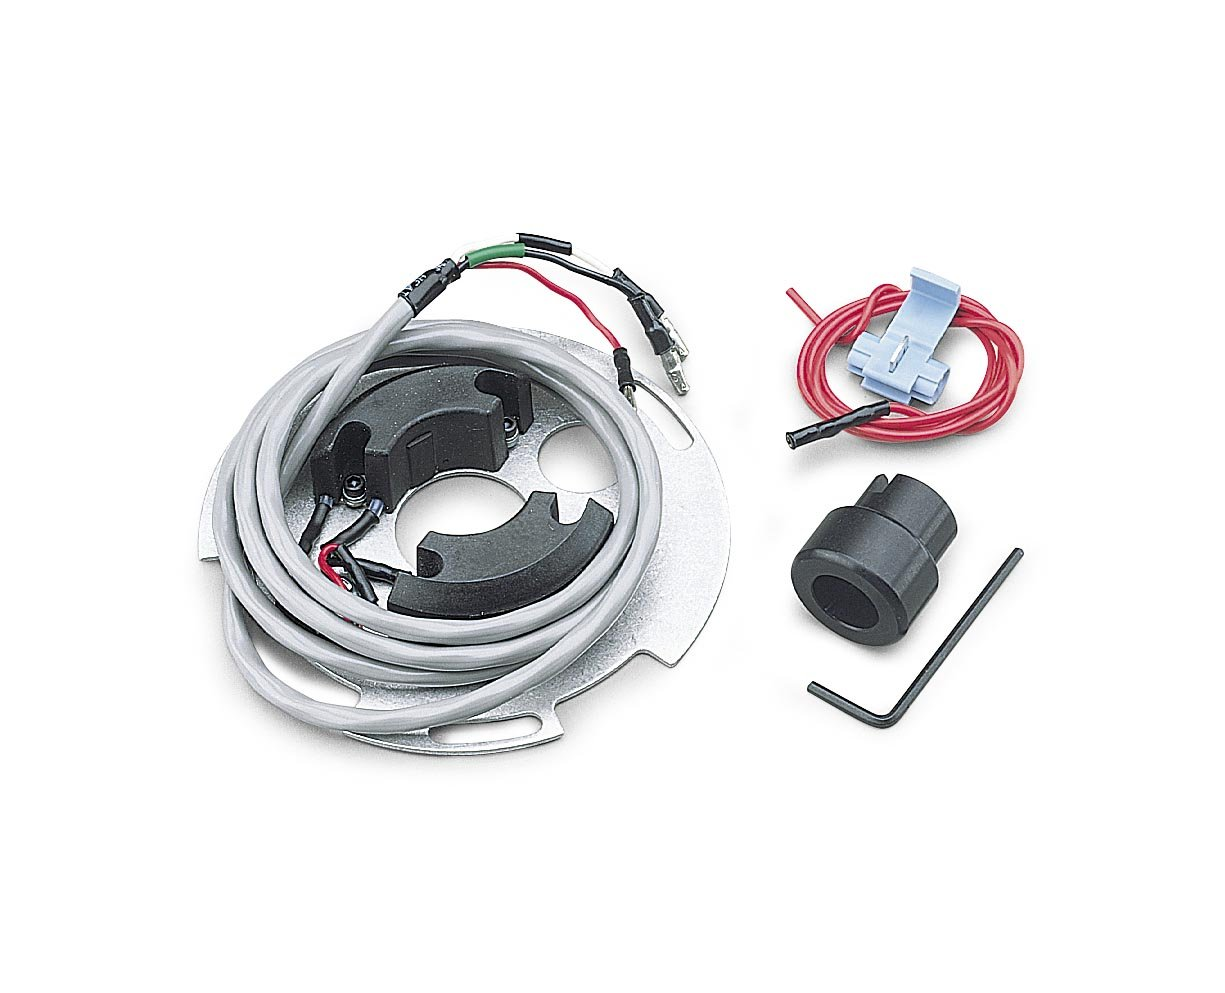 61jP%2BPeTGEL._SL1225_ amazon com dynatek self contained electronic ignition ds1 2 dyna s ignition wiring schematic harley at gsmx.co